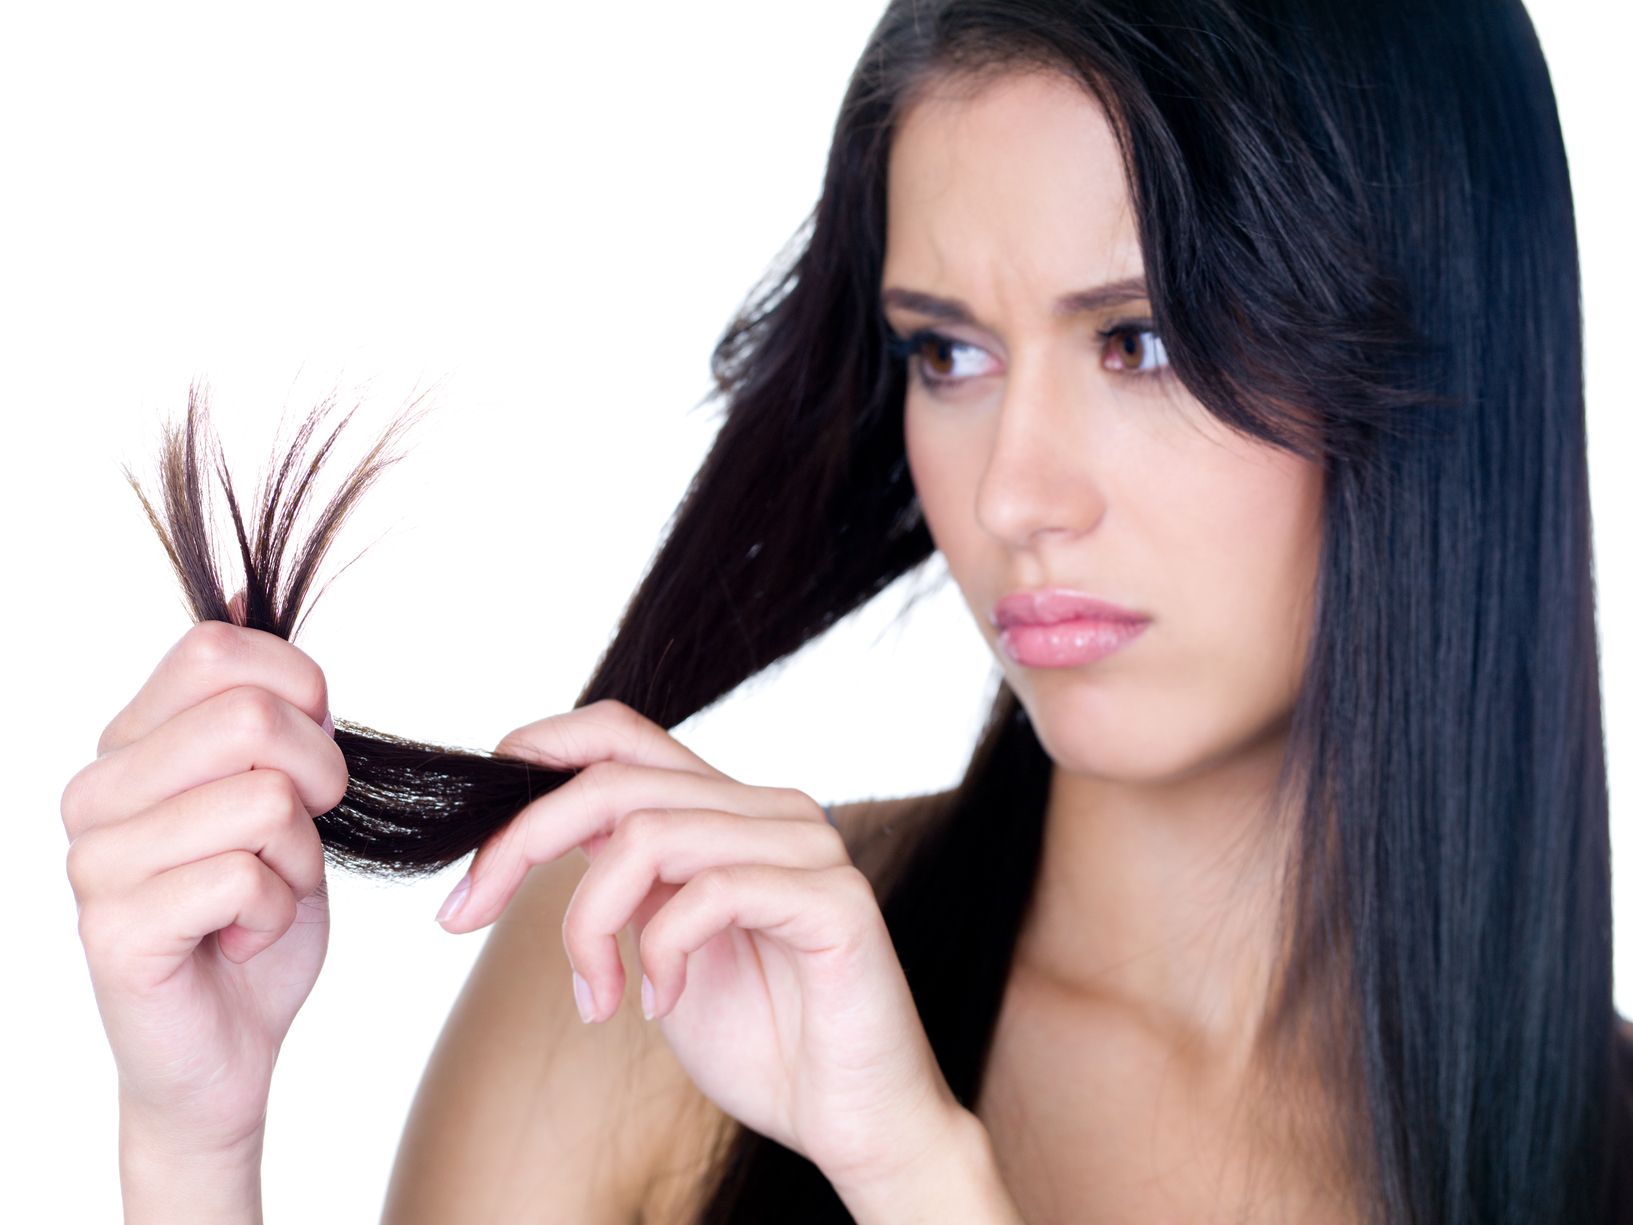 Terminal Length - How Long Can The Average Person's Hair Grow? | How